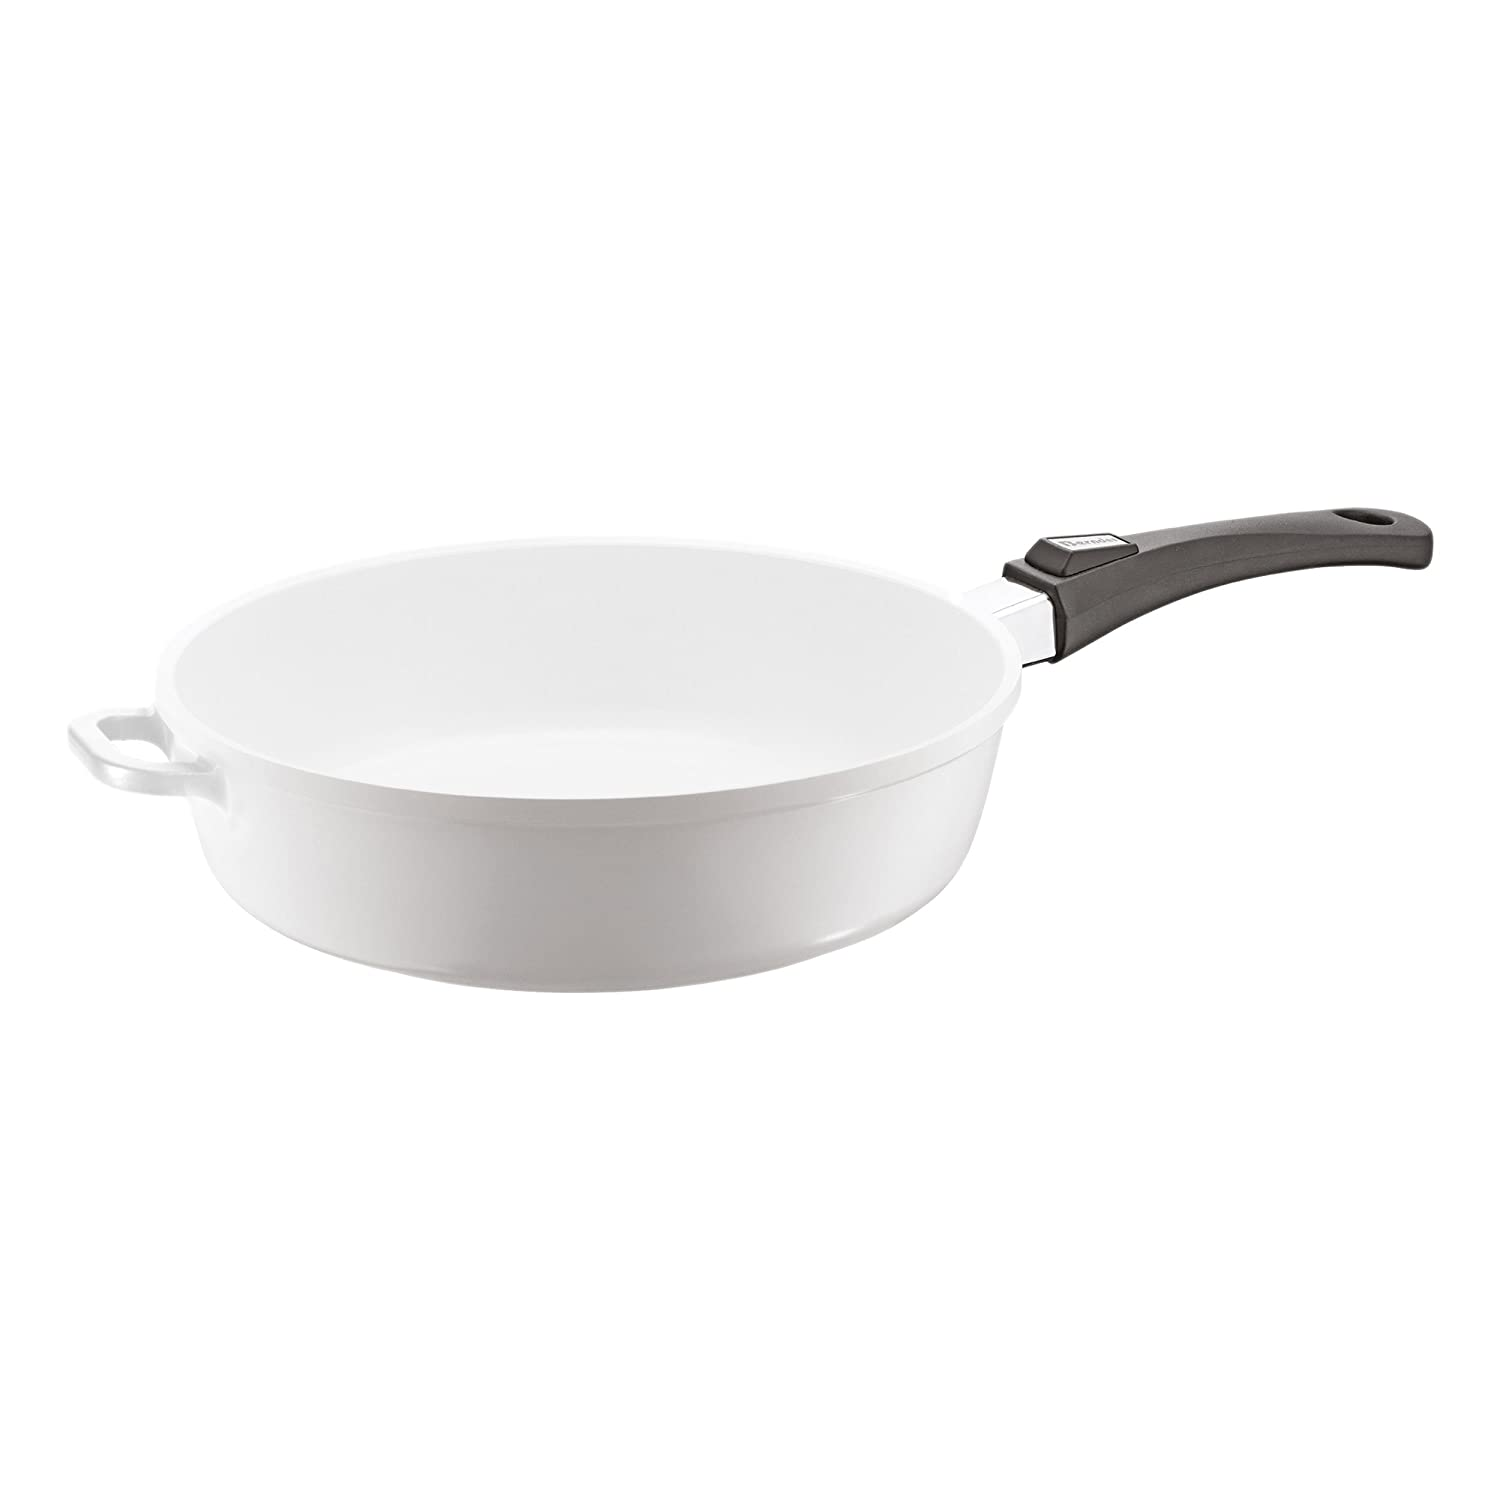 Berndes Vario Click Induction White 032129 Braising Pan 32 cm Berndes (Consignment)